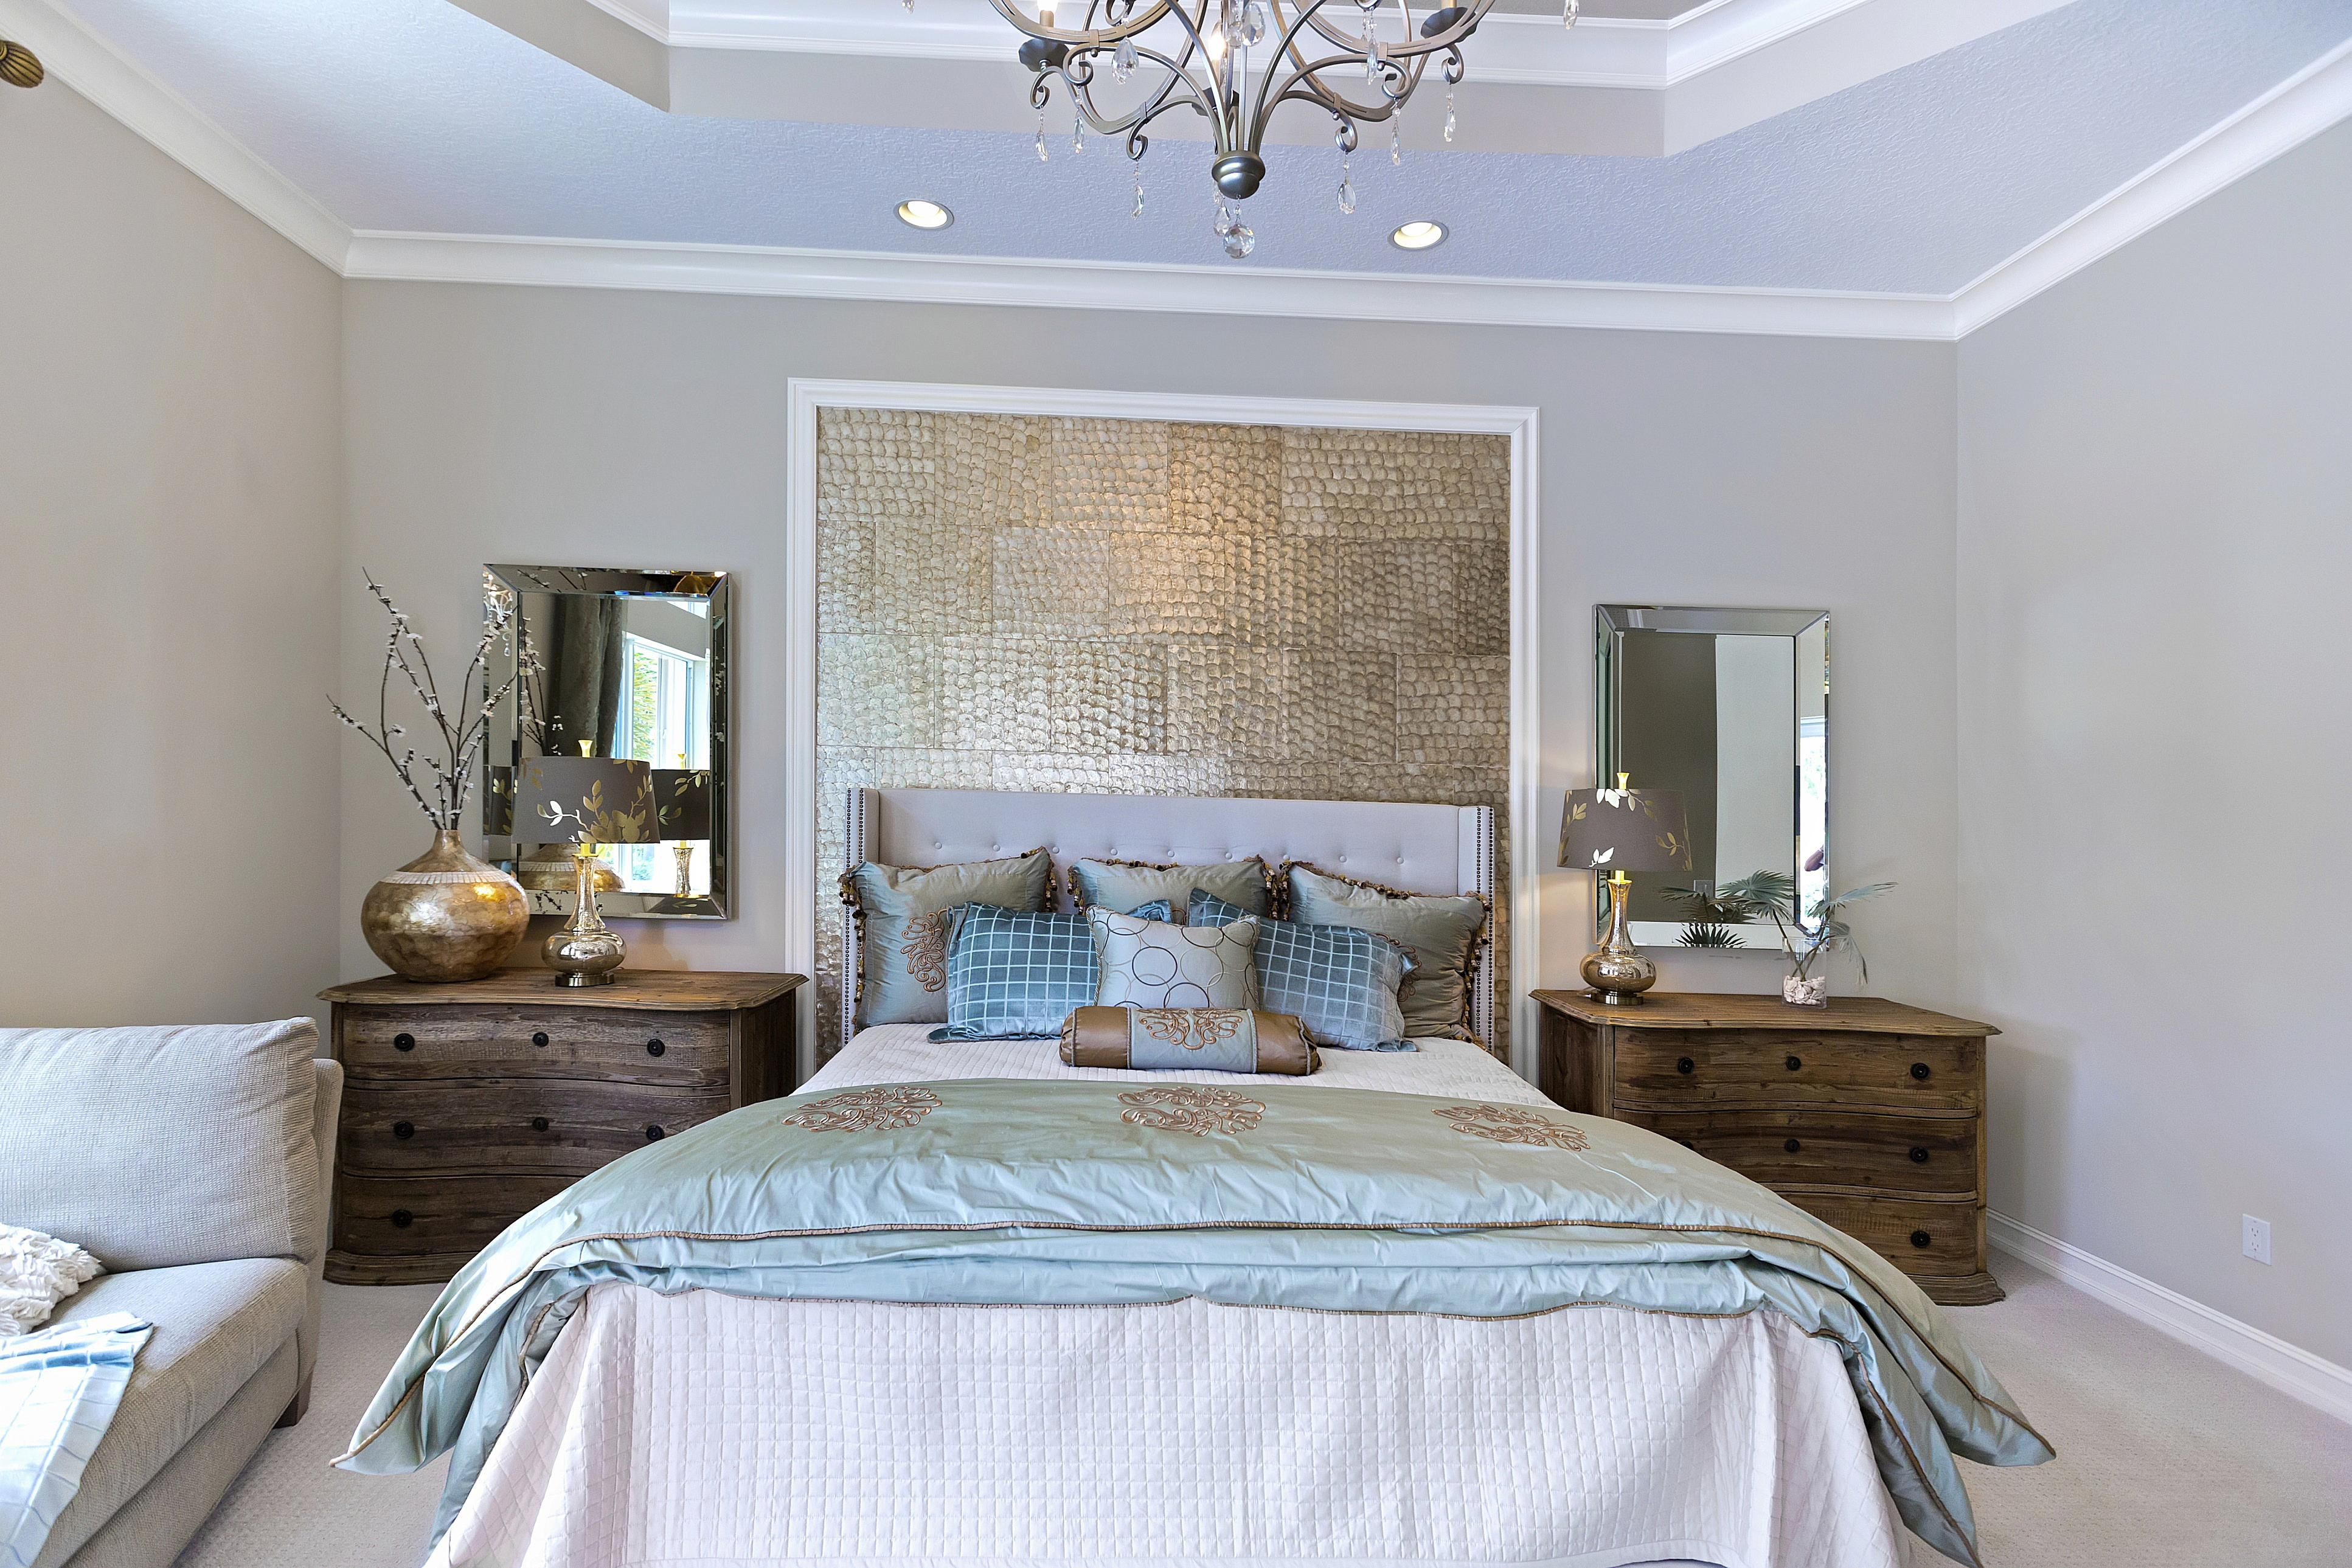 What Makes a Bedroom Great